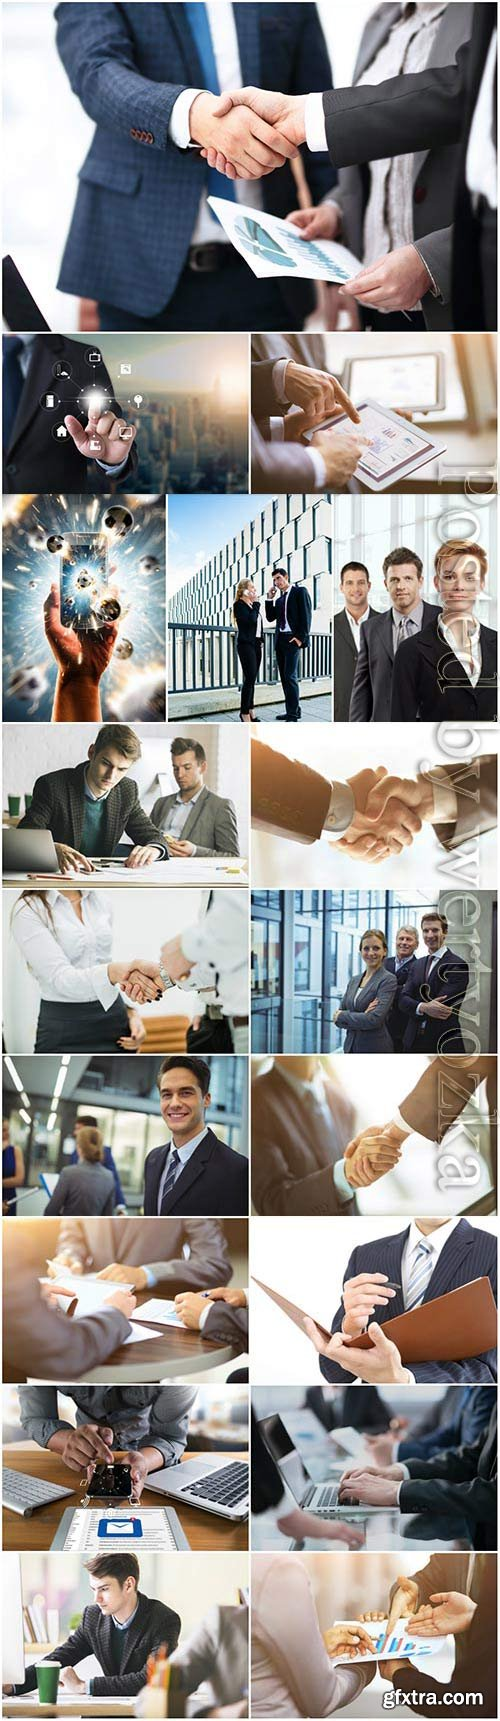 Business concept, business people stock photo